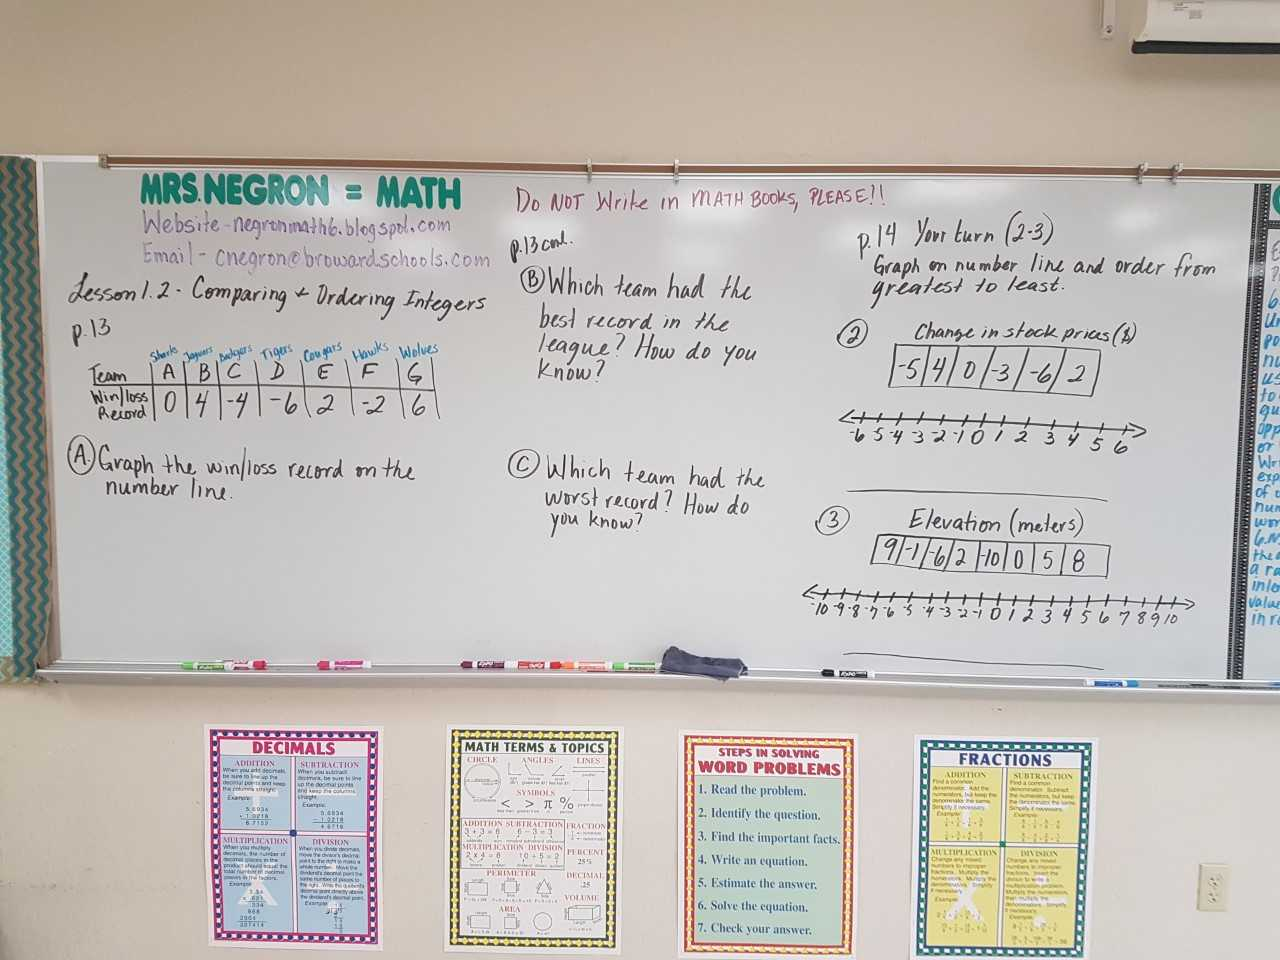 Mrs Negron 6th Grade Math Class Lesson 1 2 Comparing And